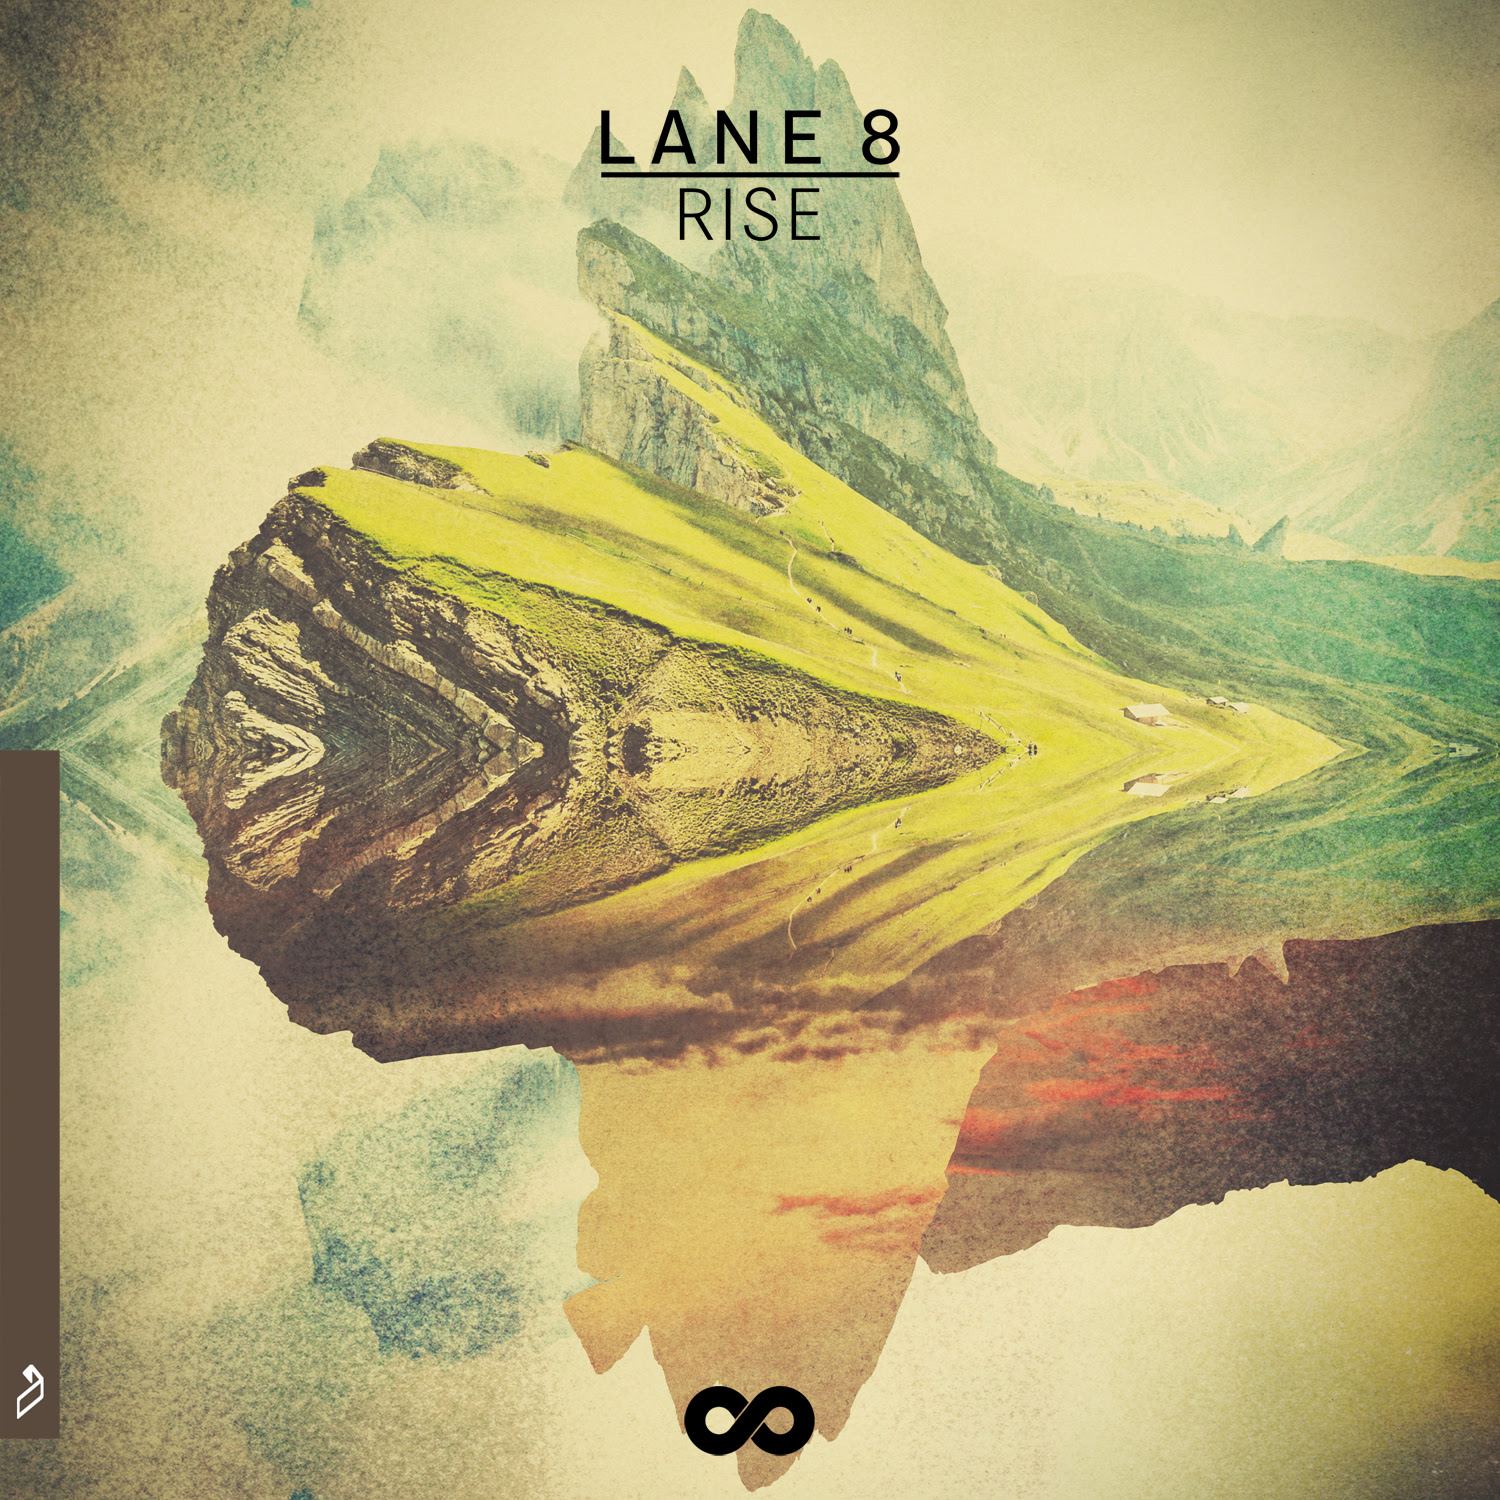 Lane 8 Shares Summer 2015 Mixtape, Announces More Tour Dates, including Australia and North america.